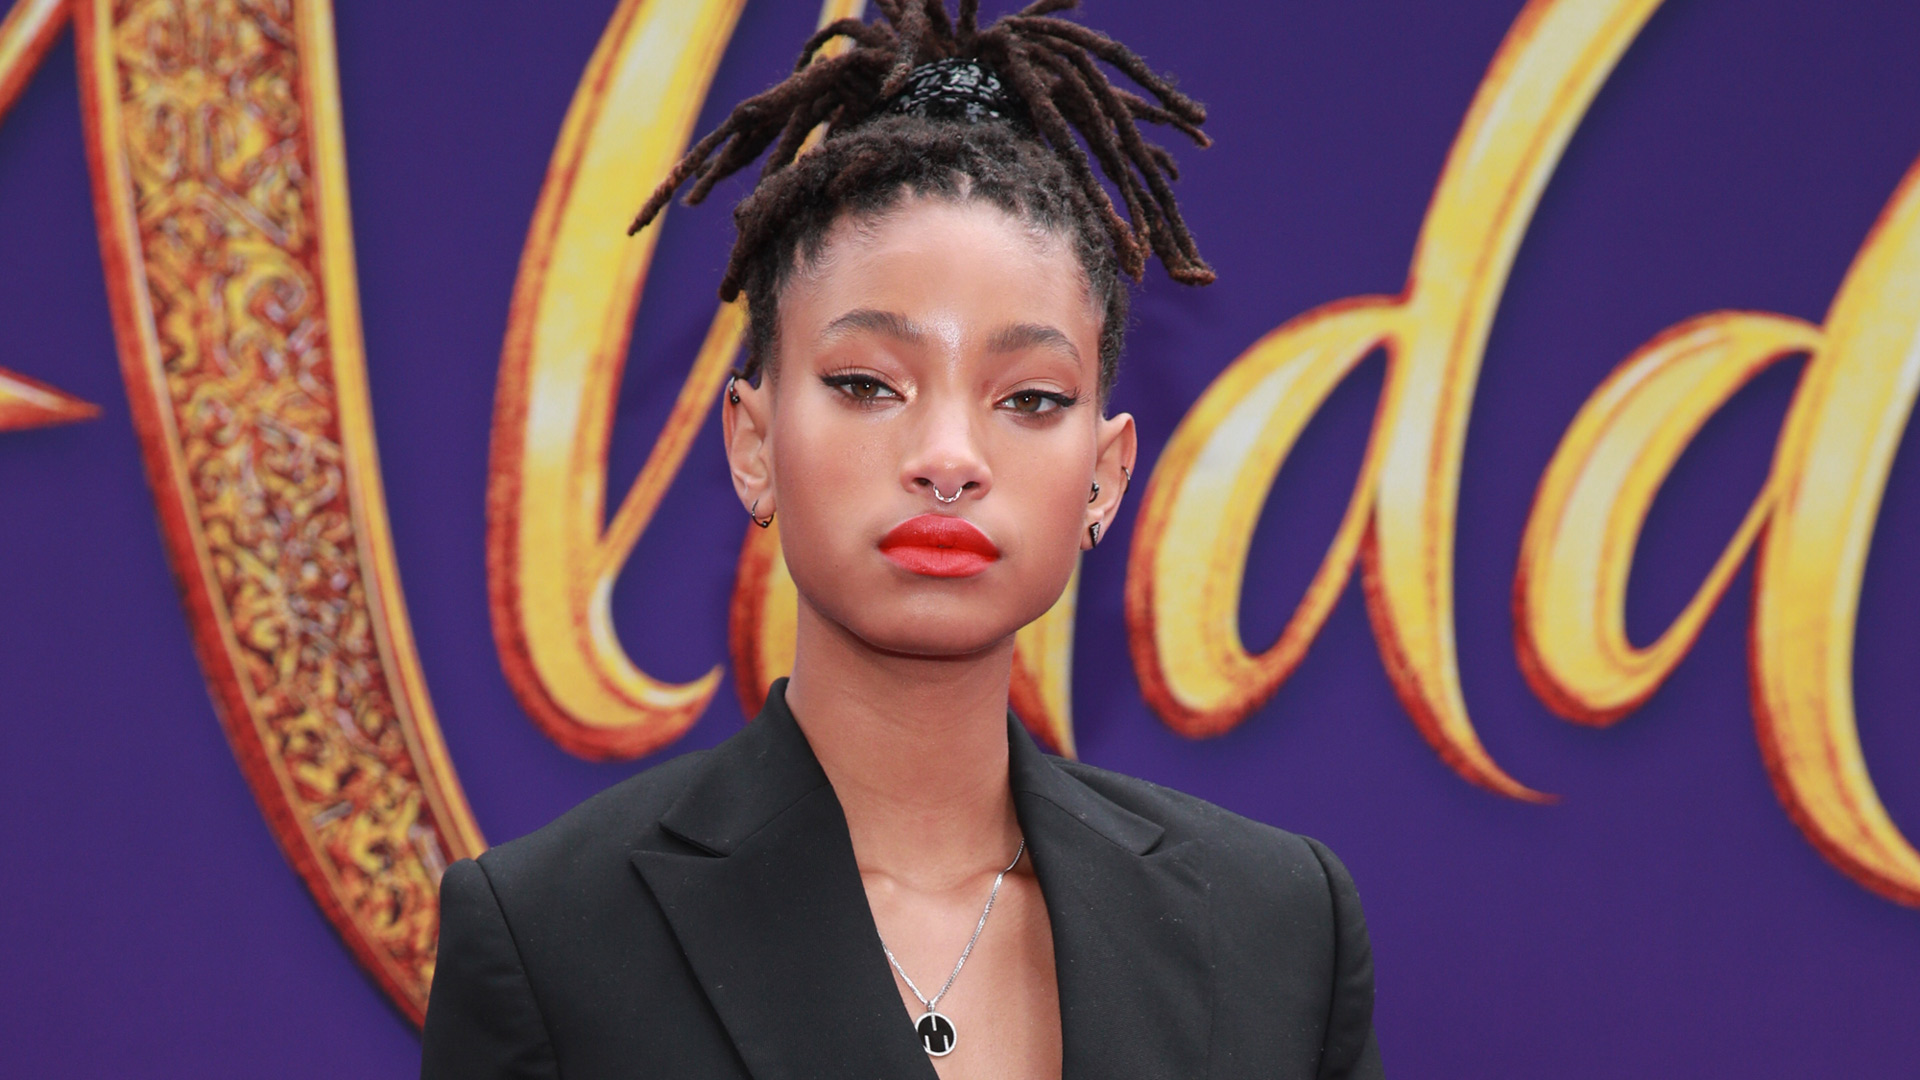 Willow, la fille de Will Smith évoque son addiction à la drogue